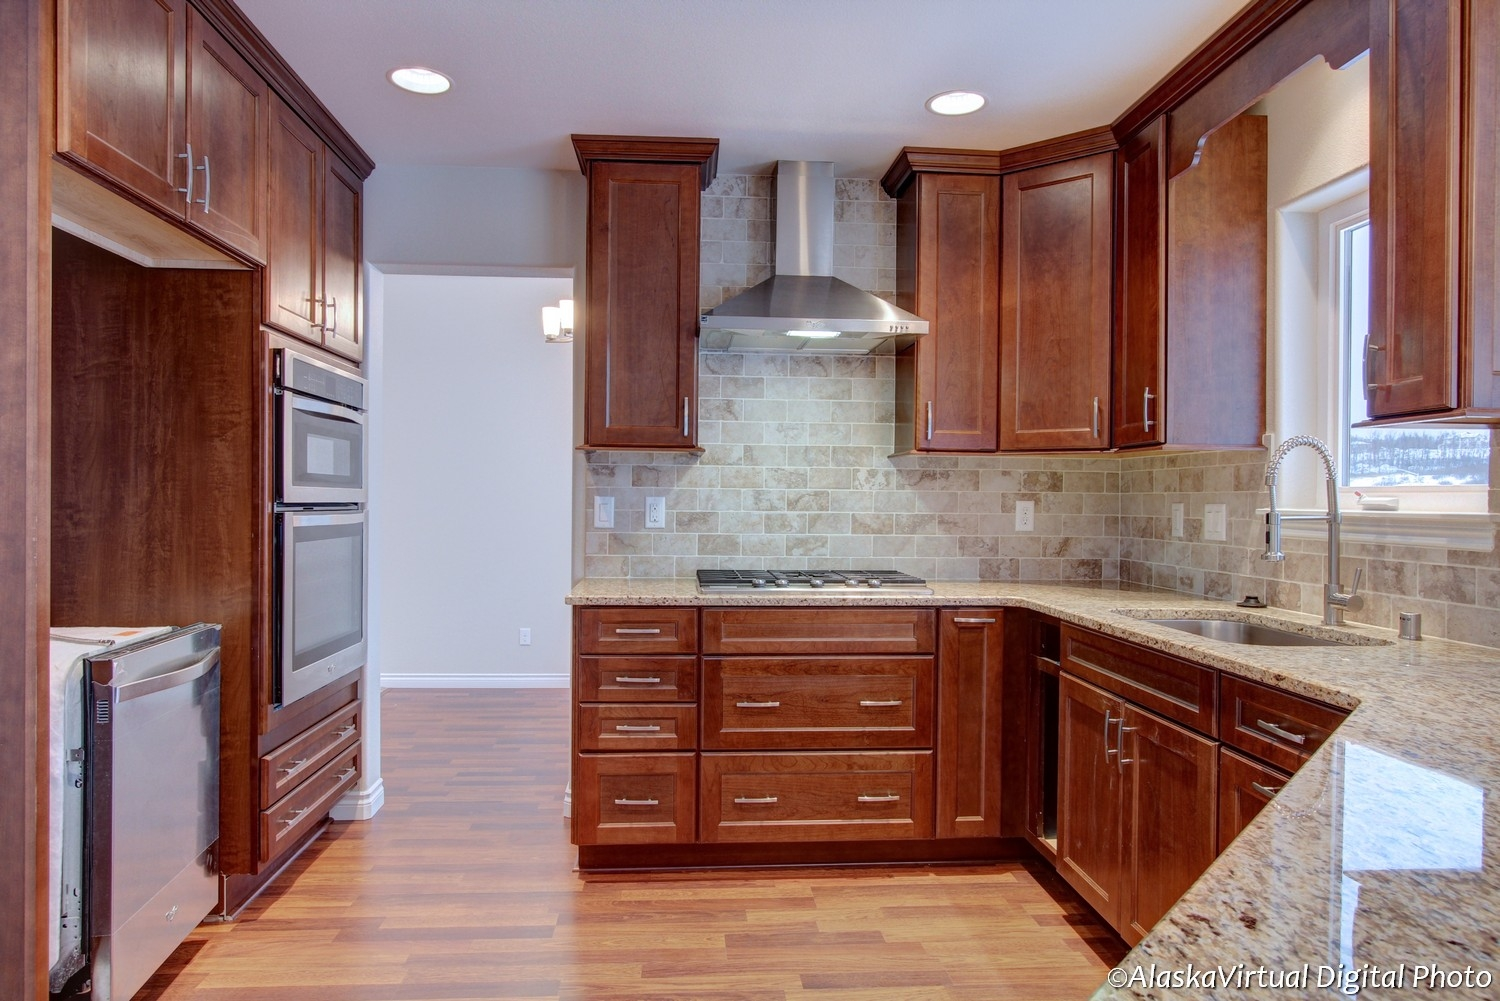 Types Of Molding For Kitchen Cabinets